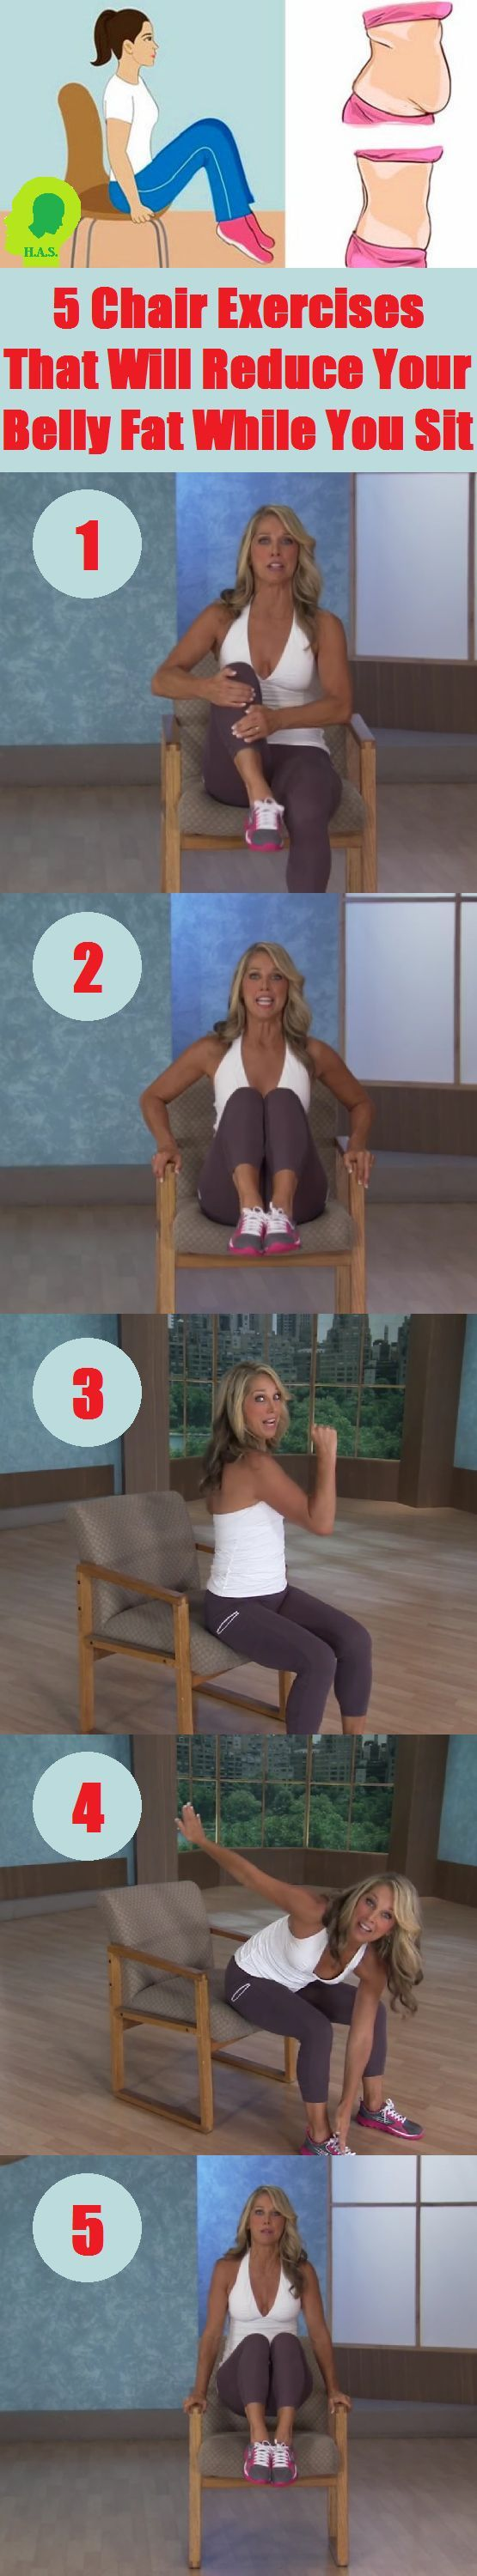 If you are one of those people who spend most of their day sitting at work, you should definitely try the following chair exercises.